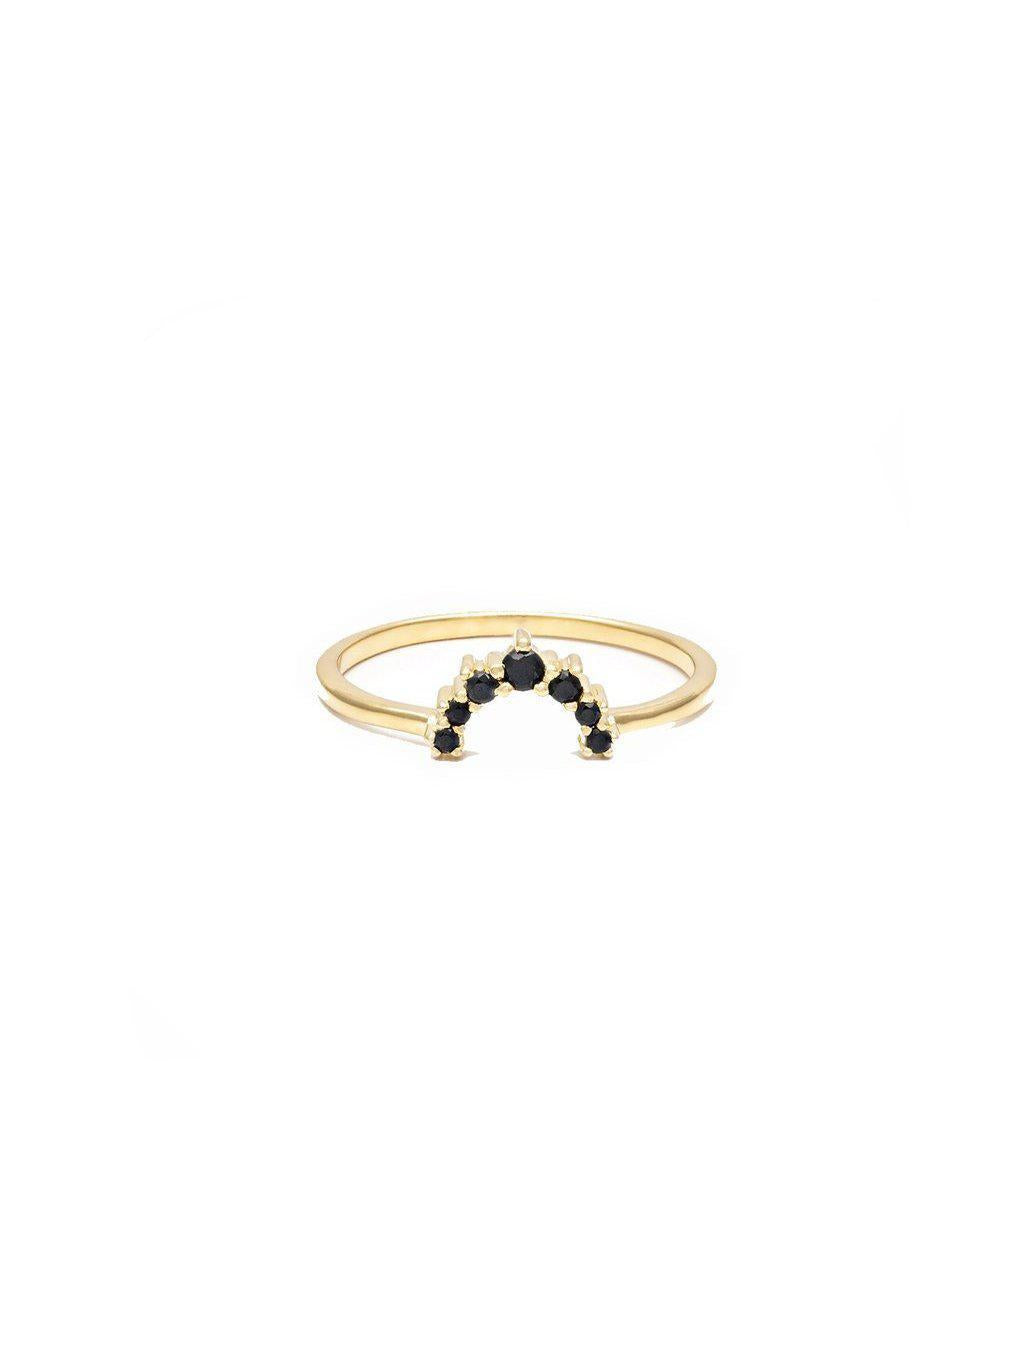 Leah Alexandra Rainbow Ring-Jewerly - Rings-Sattva Boutique